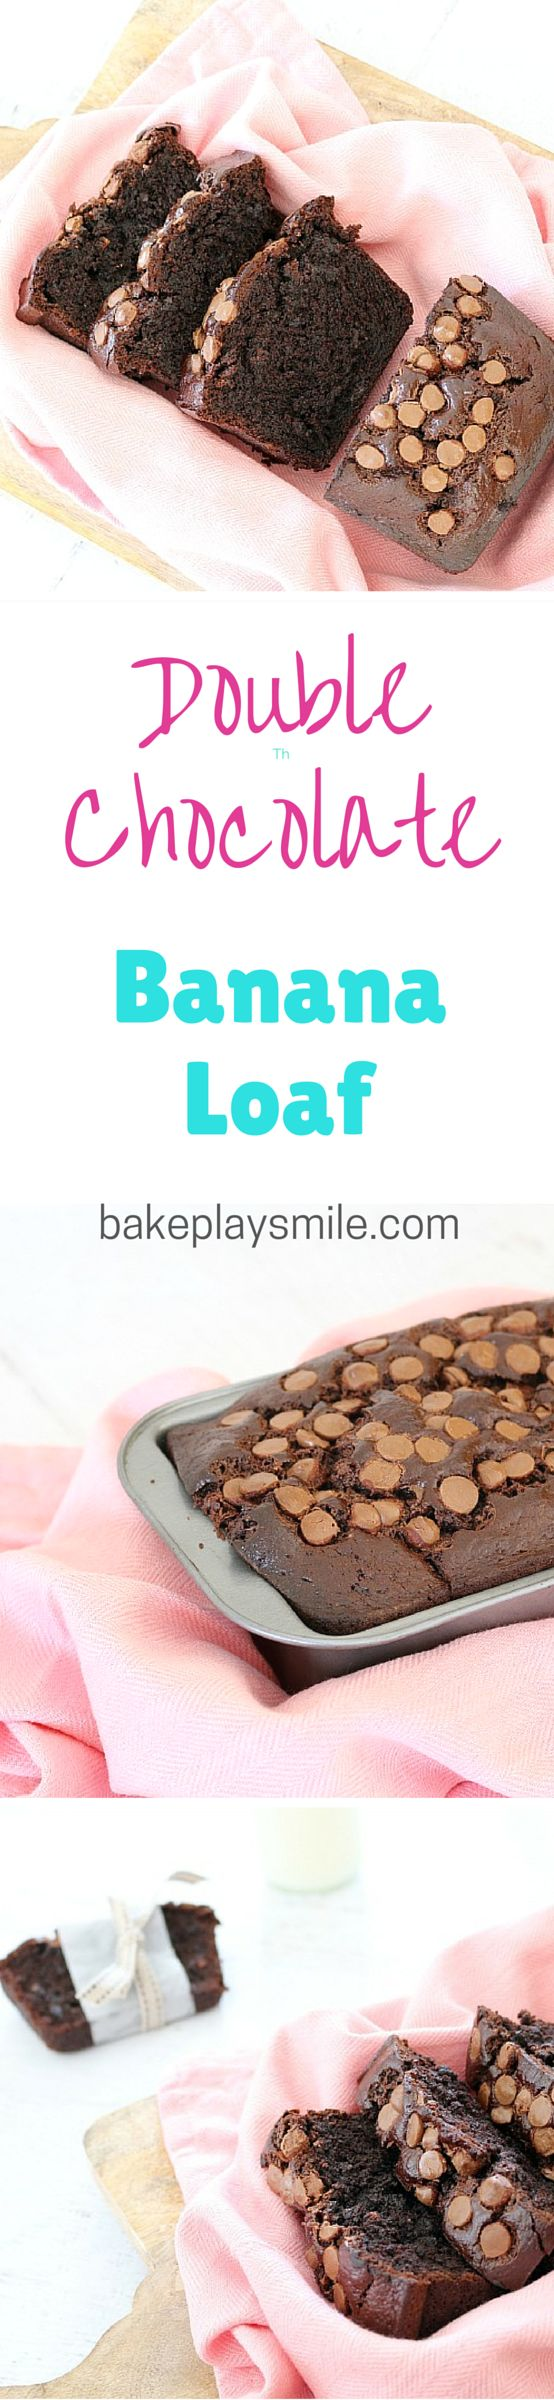 This is the only chocolate banana loaf recipe you'll ever need! It's so rich and fudgy! Yum!